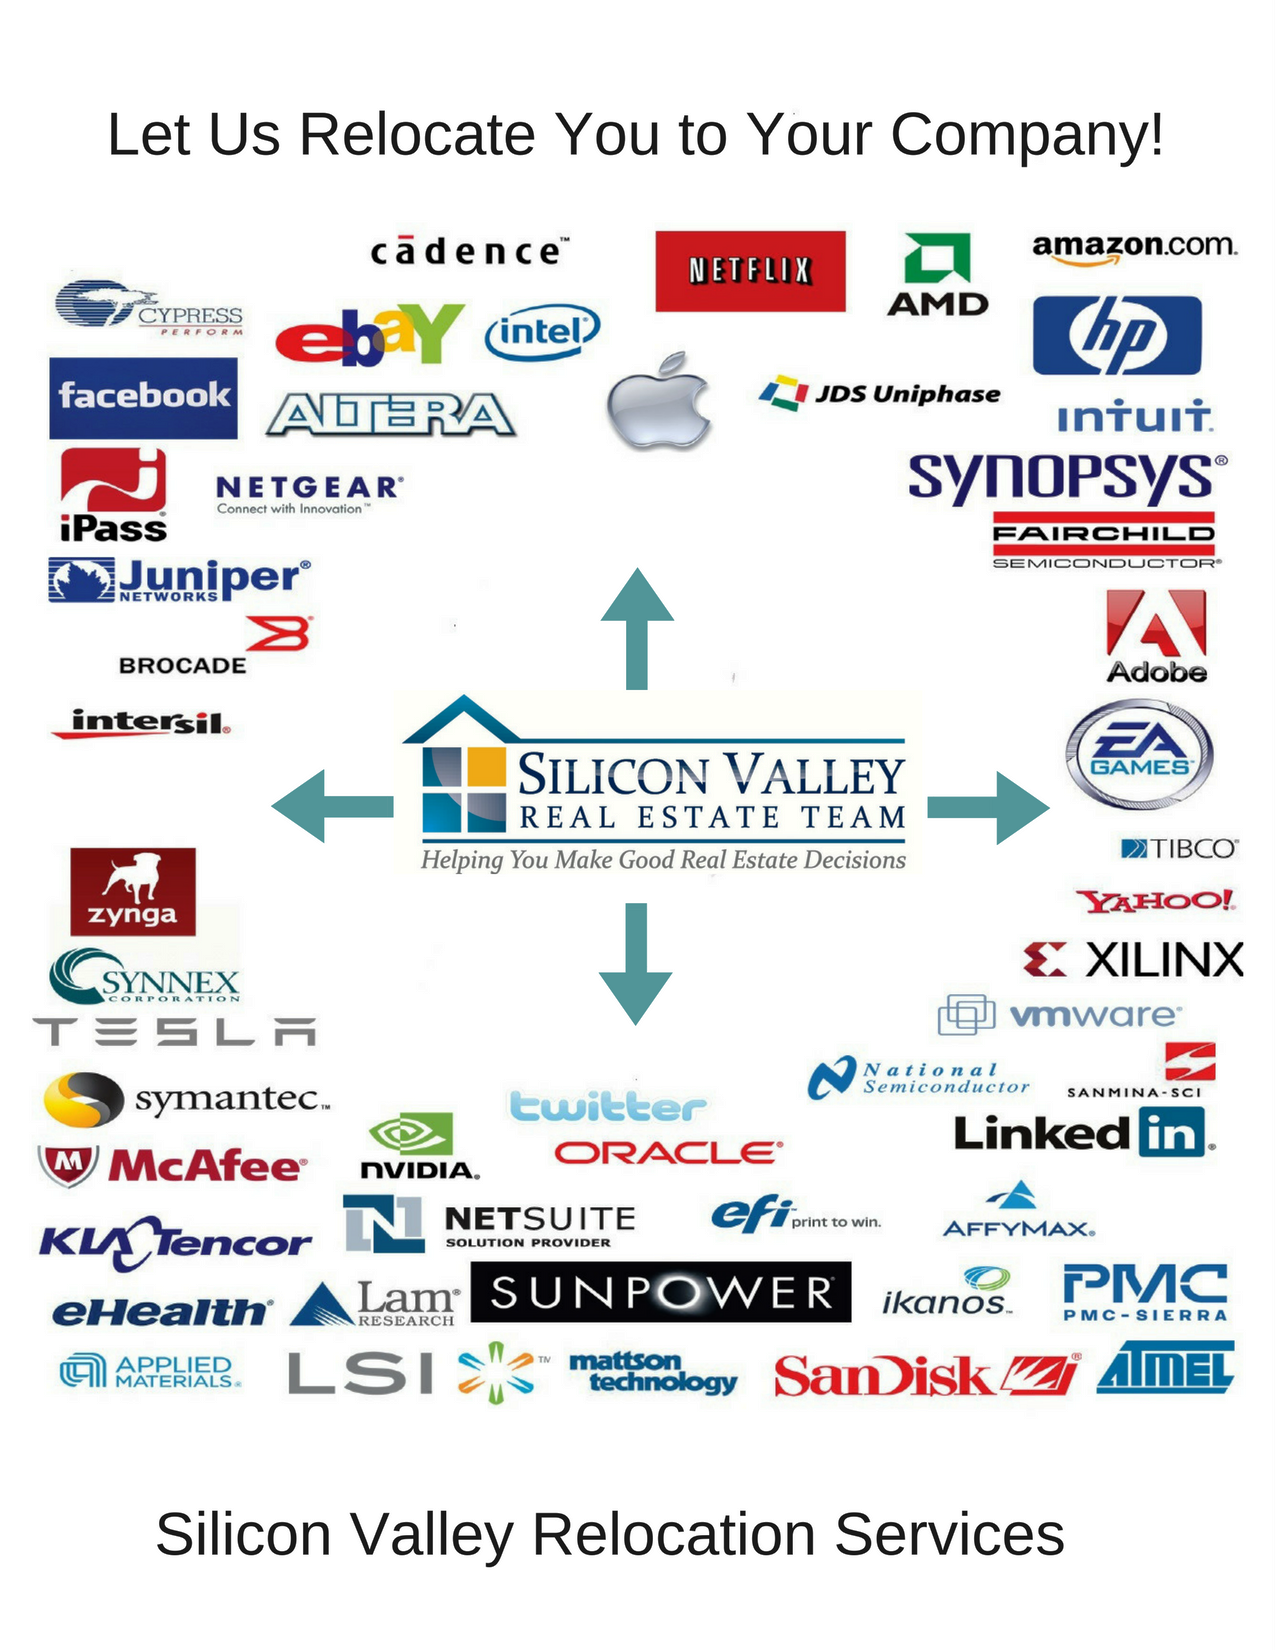 Corporate Relocation Service for Silicon Valley